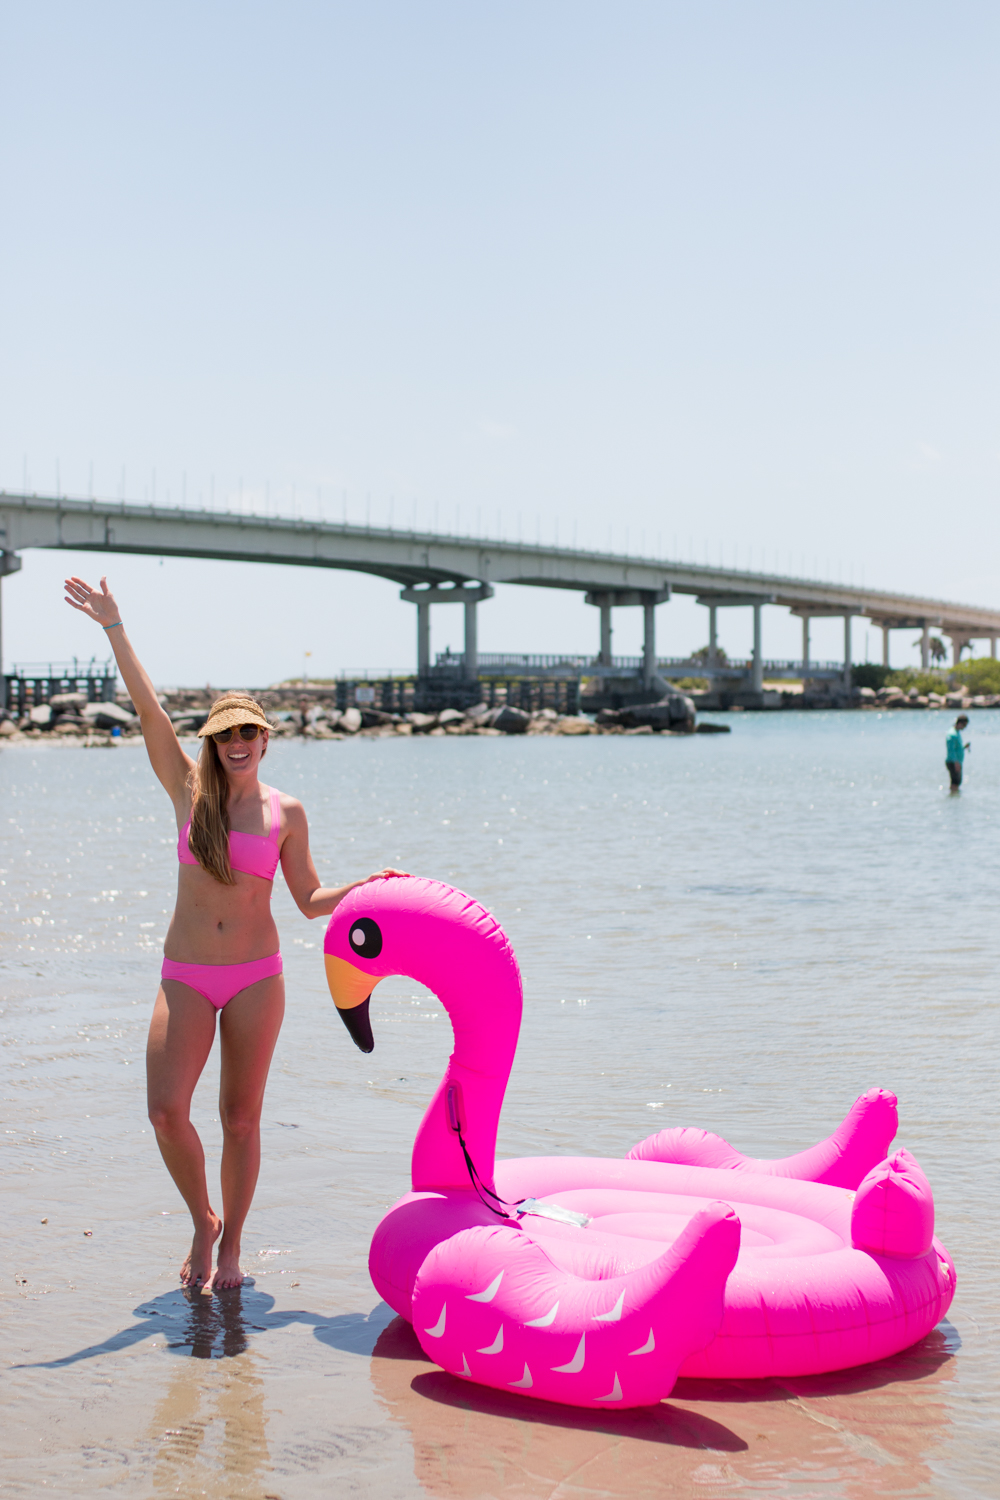 Amazon Pool Floats Under $50 | Summer Pool Floats | Amazon Pool Float Flamingo - Sunshine Style